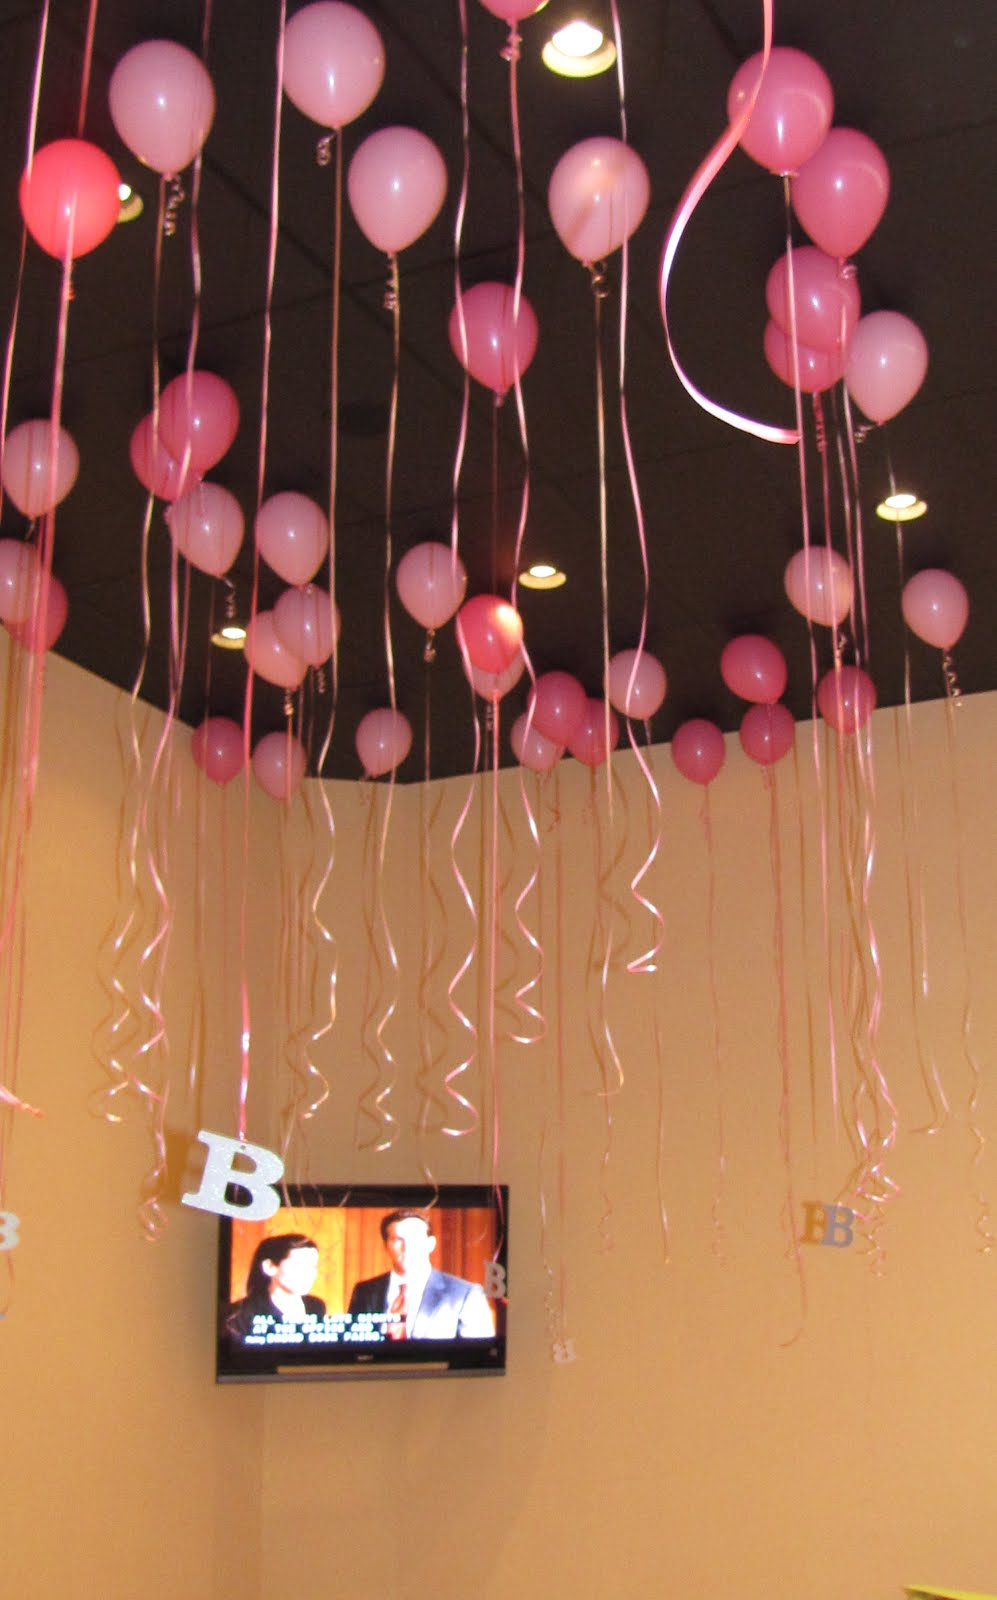 30th Surprise Birthday Ceiling Balloons